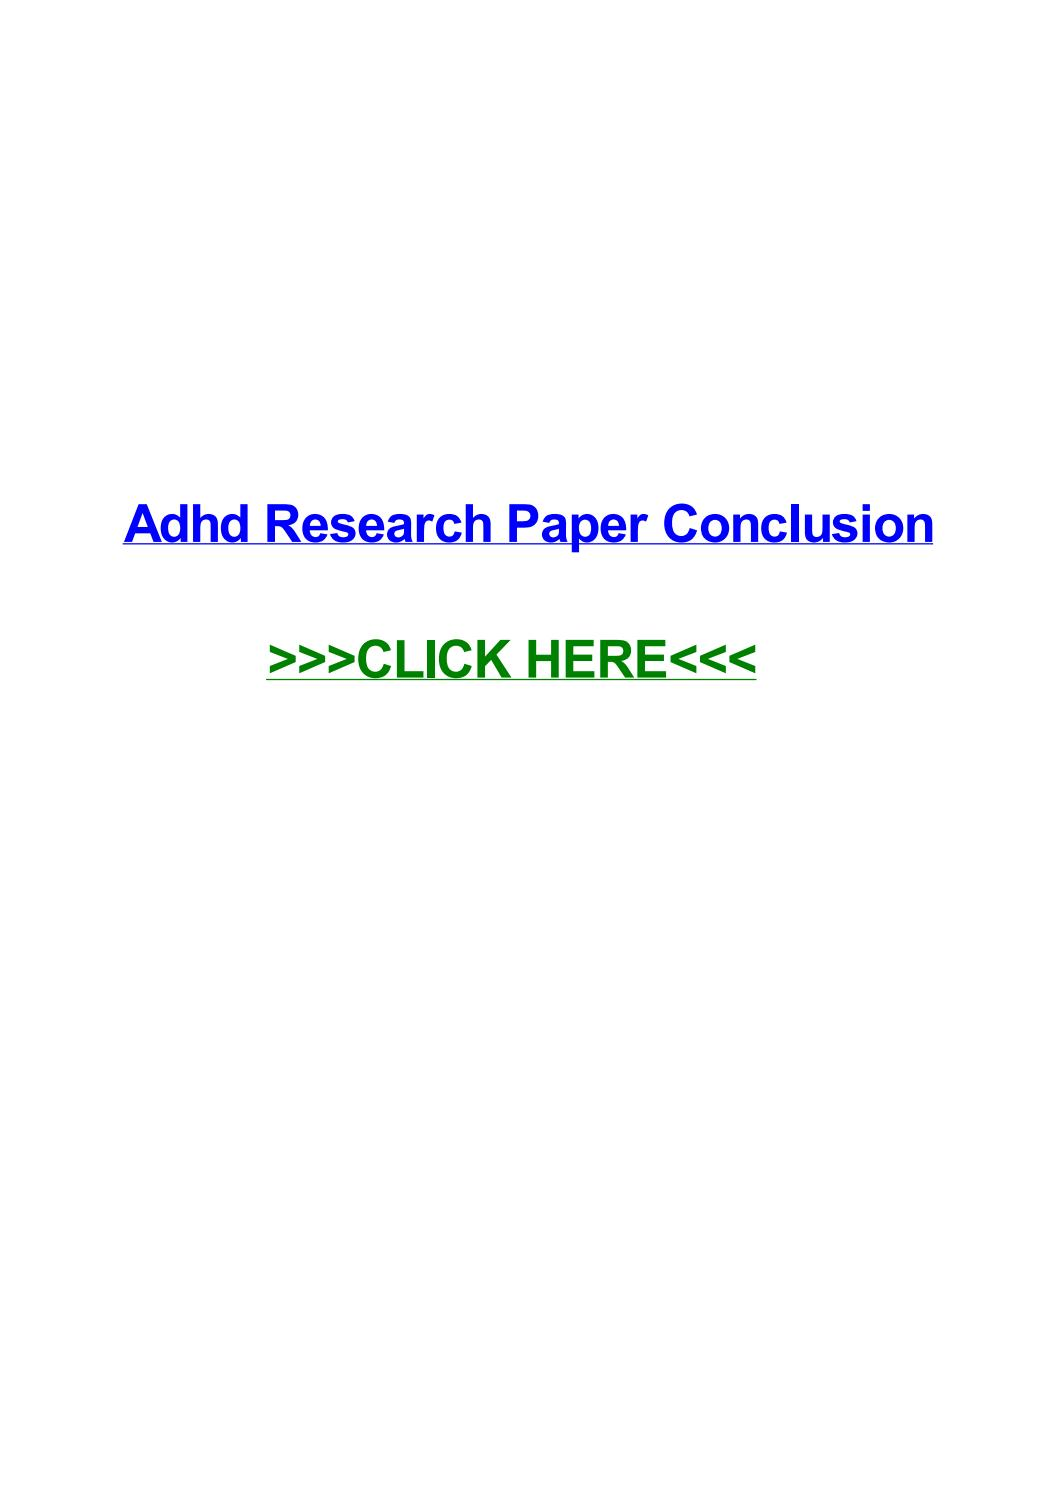 009 Page 1 Adhd Research Paper Impressive Conclusion Full